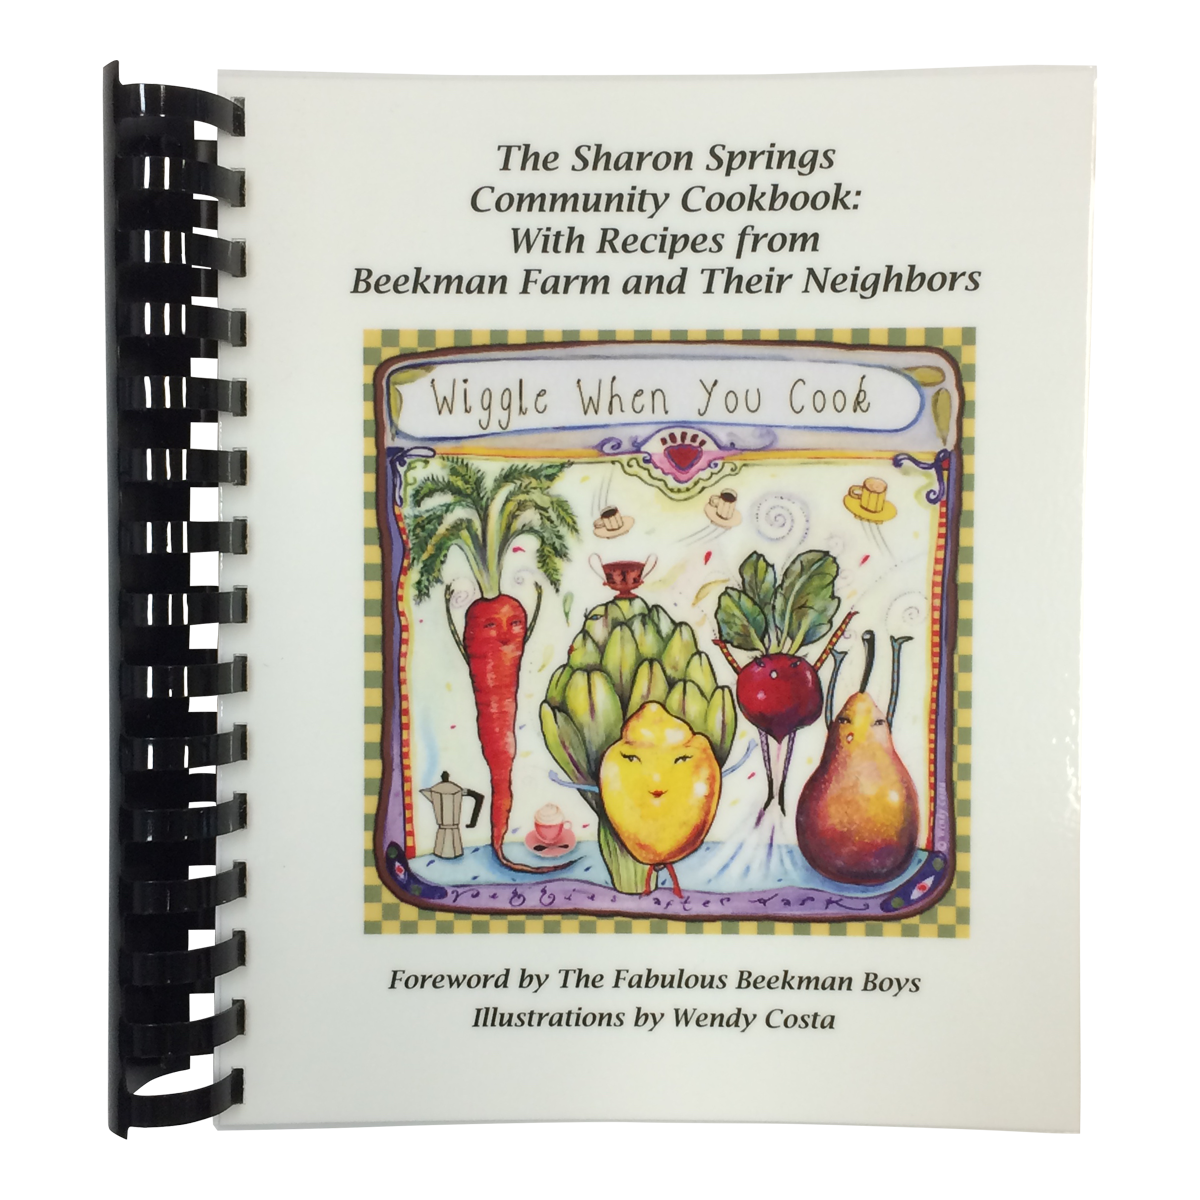 The Sharon Springs Community Cookbook